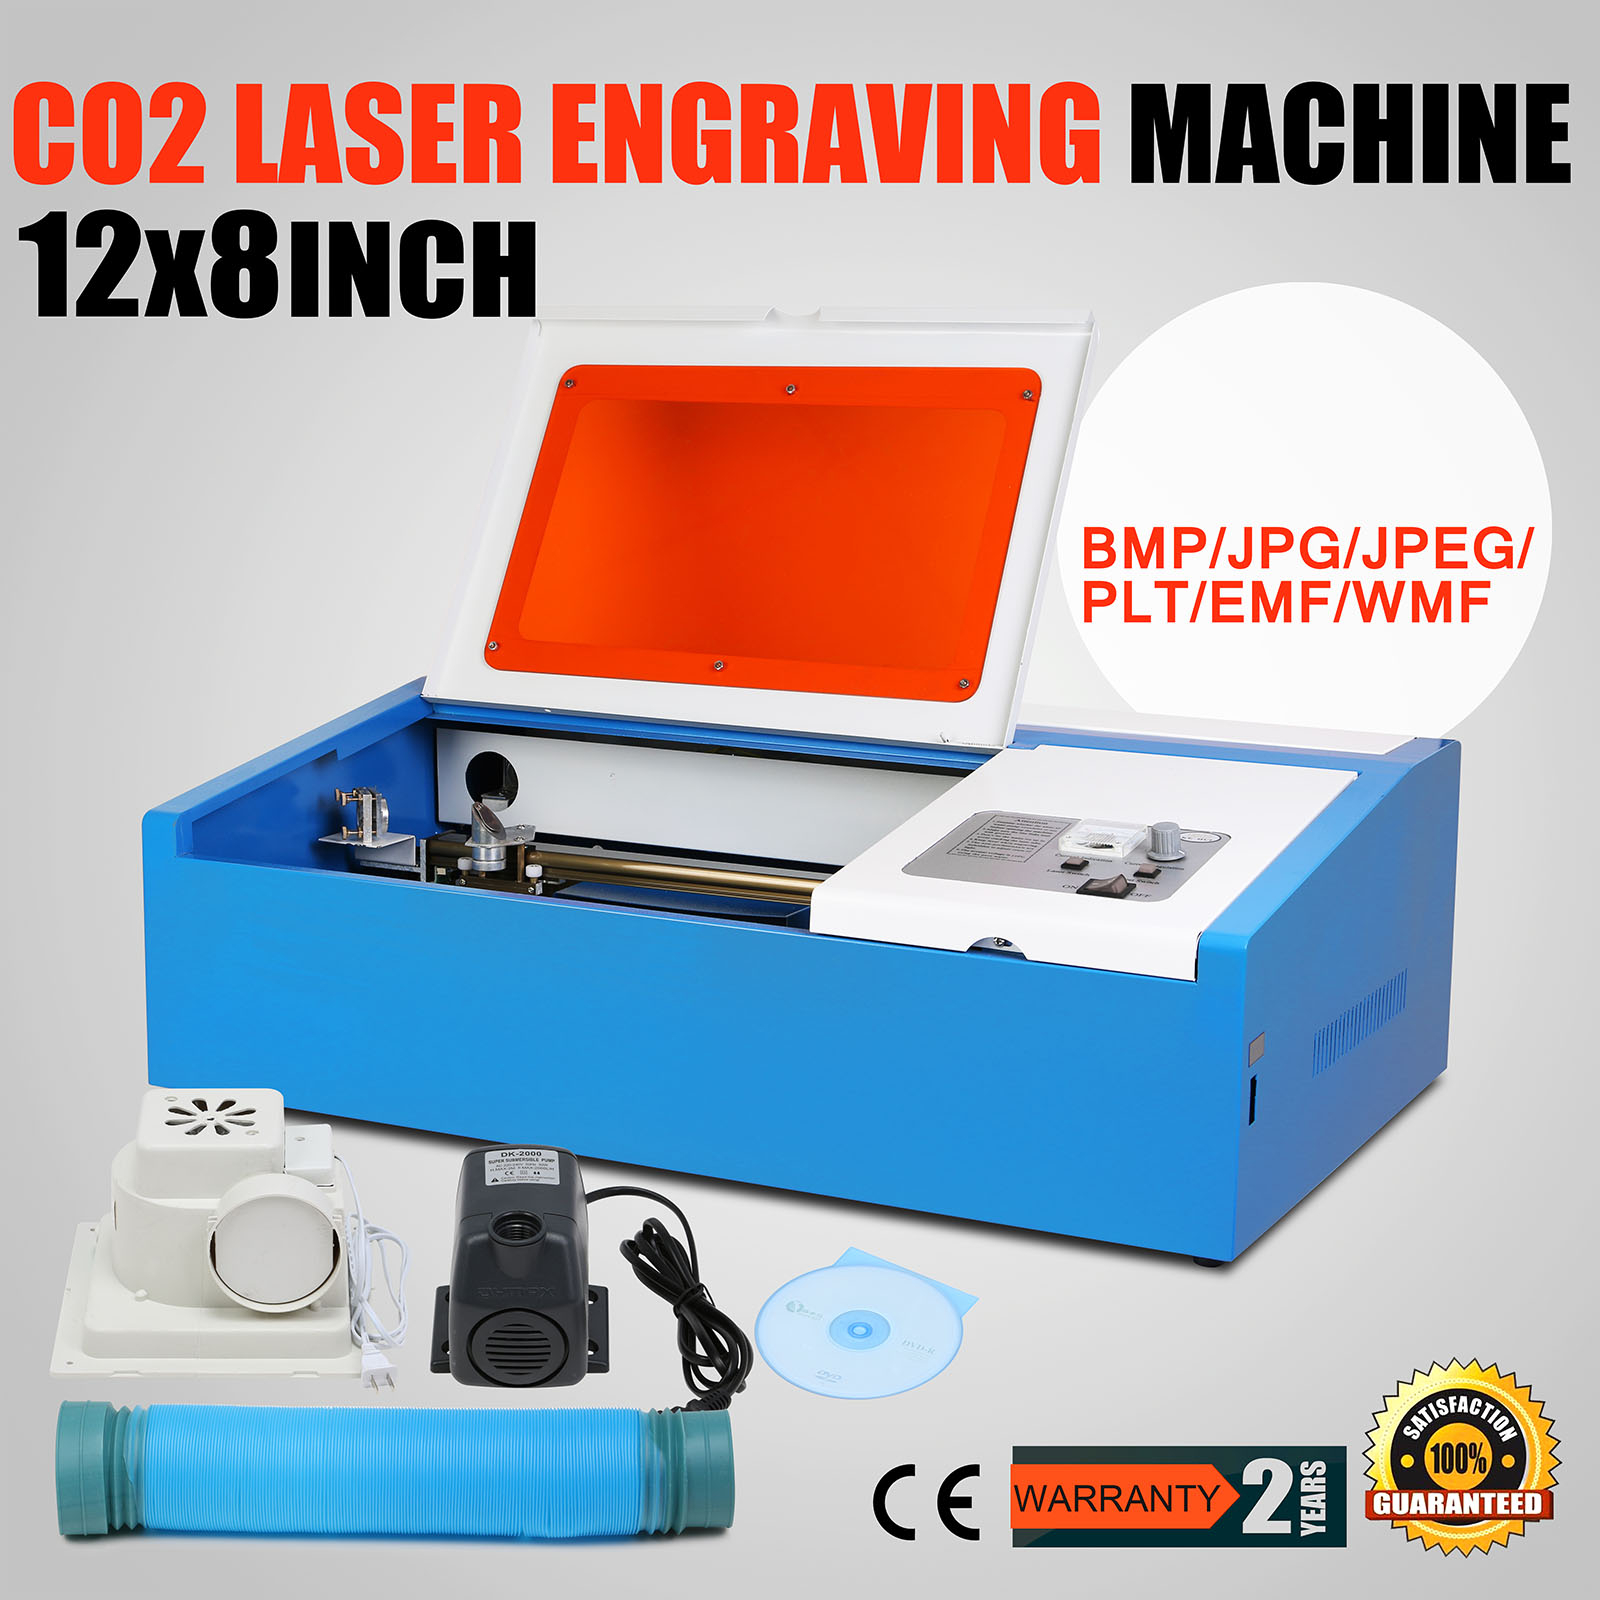 CO2-Usb-Laser-Engraving-Cutting-Machine-Engraver-Cutter-Air-Assist-Carving thumbnail 13